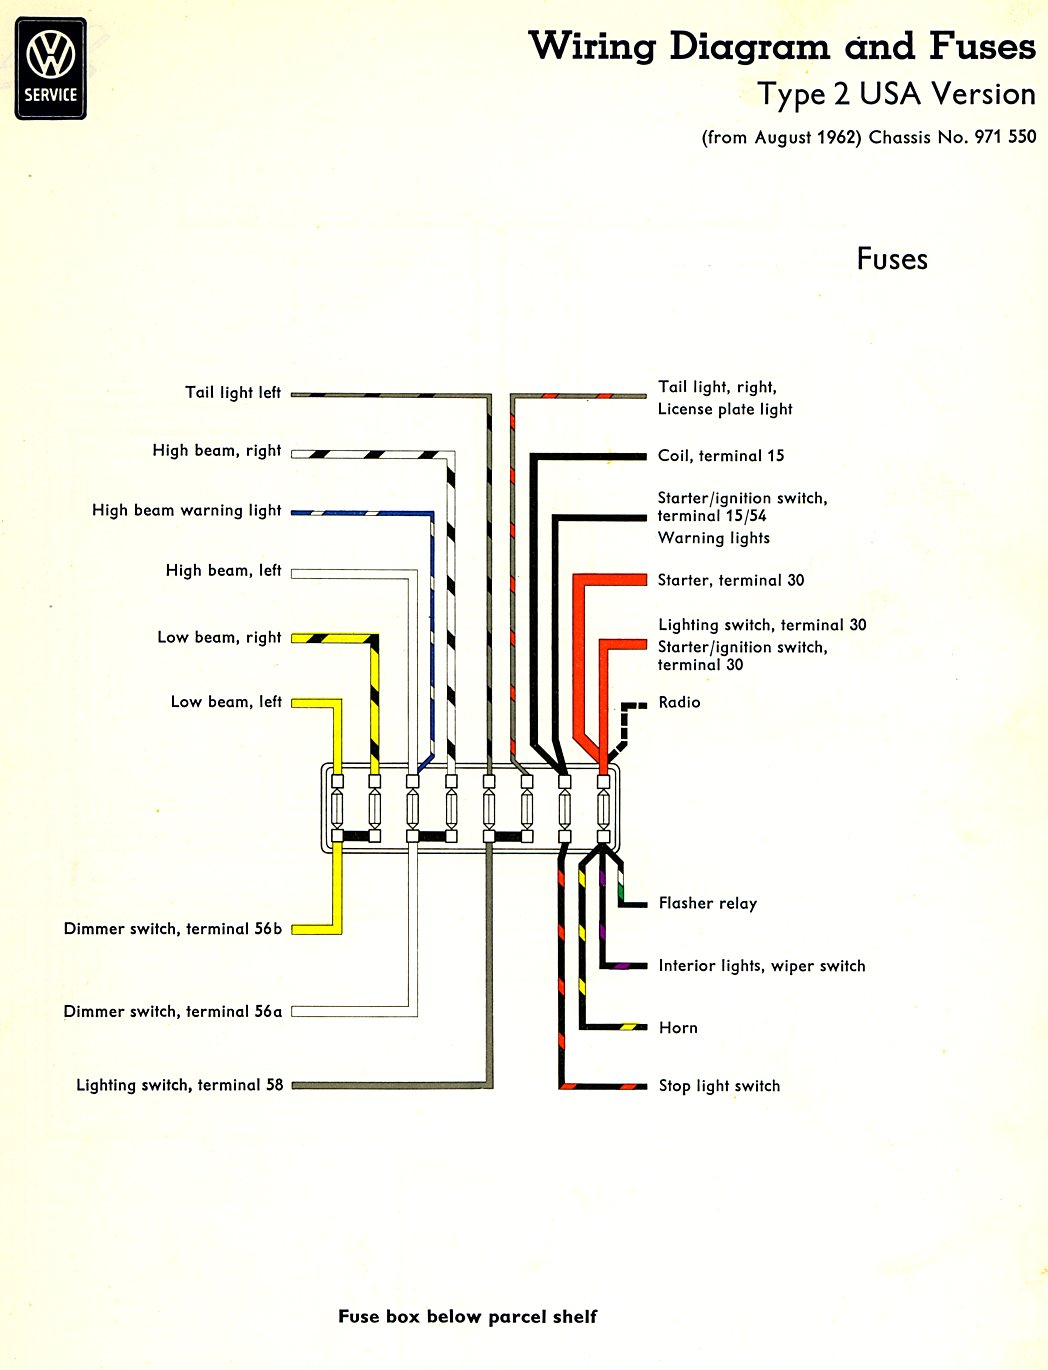 Type 2 Wiring Diagrams 2001 Vw Golf Alternator Diagram